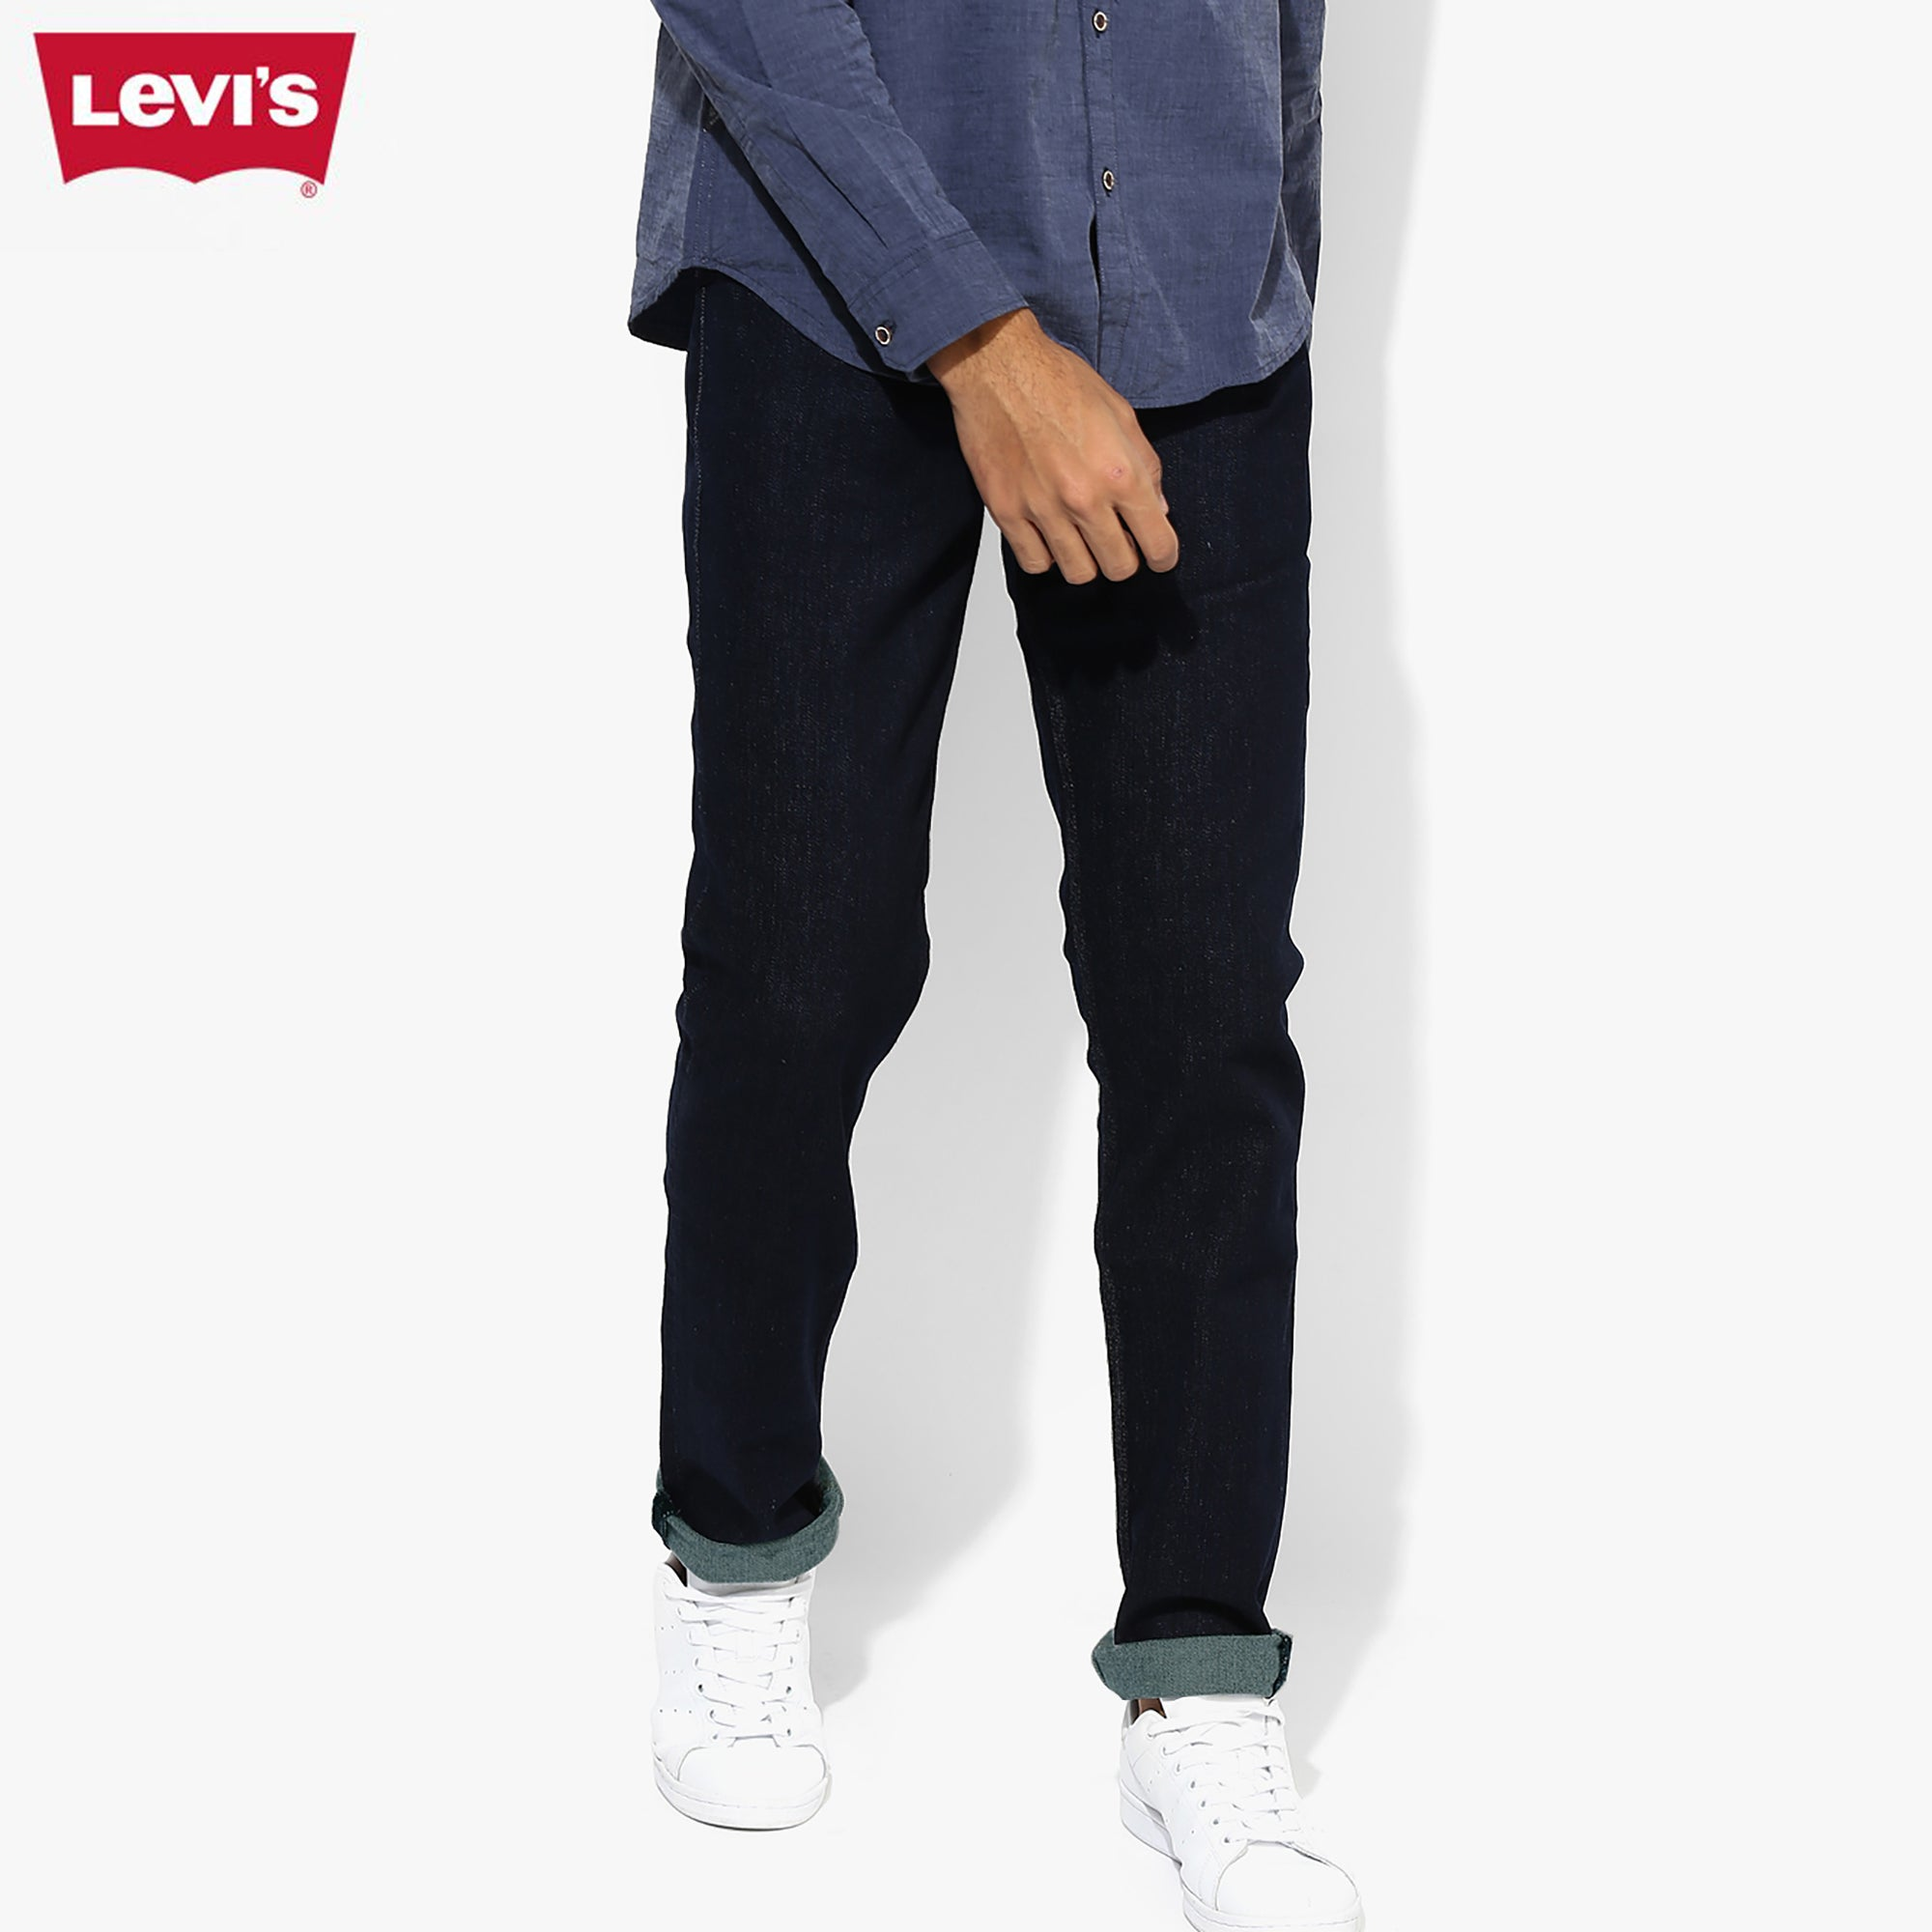 LEVI'S Slim Fit Stretch Denim For Men-Dark Navy-Levis 18